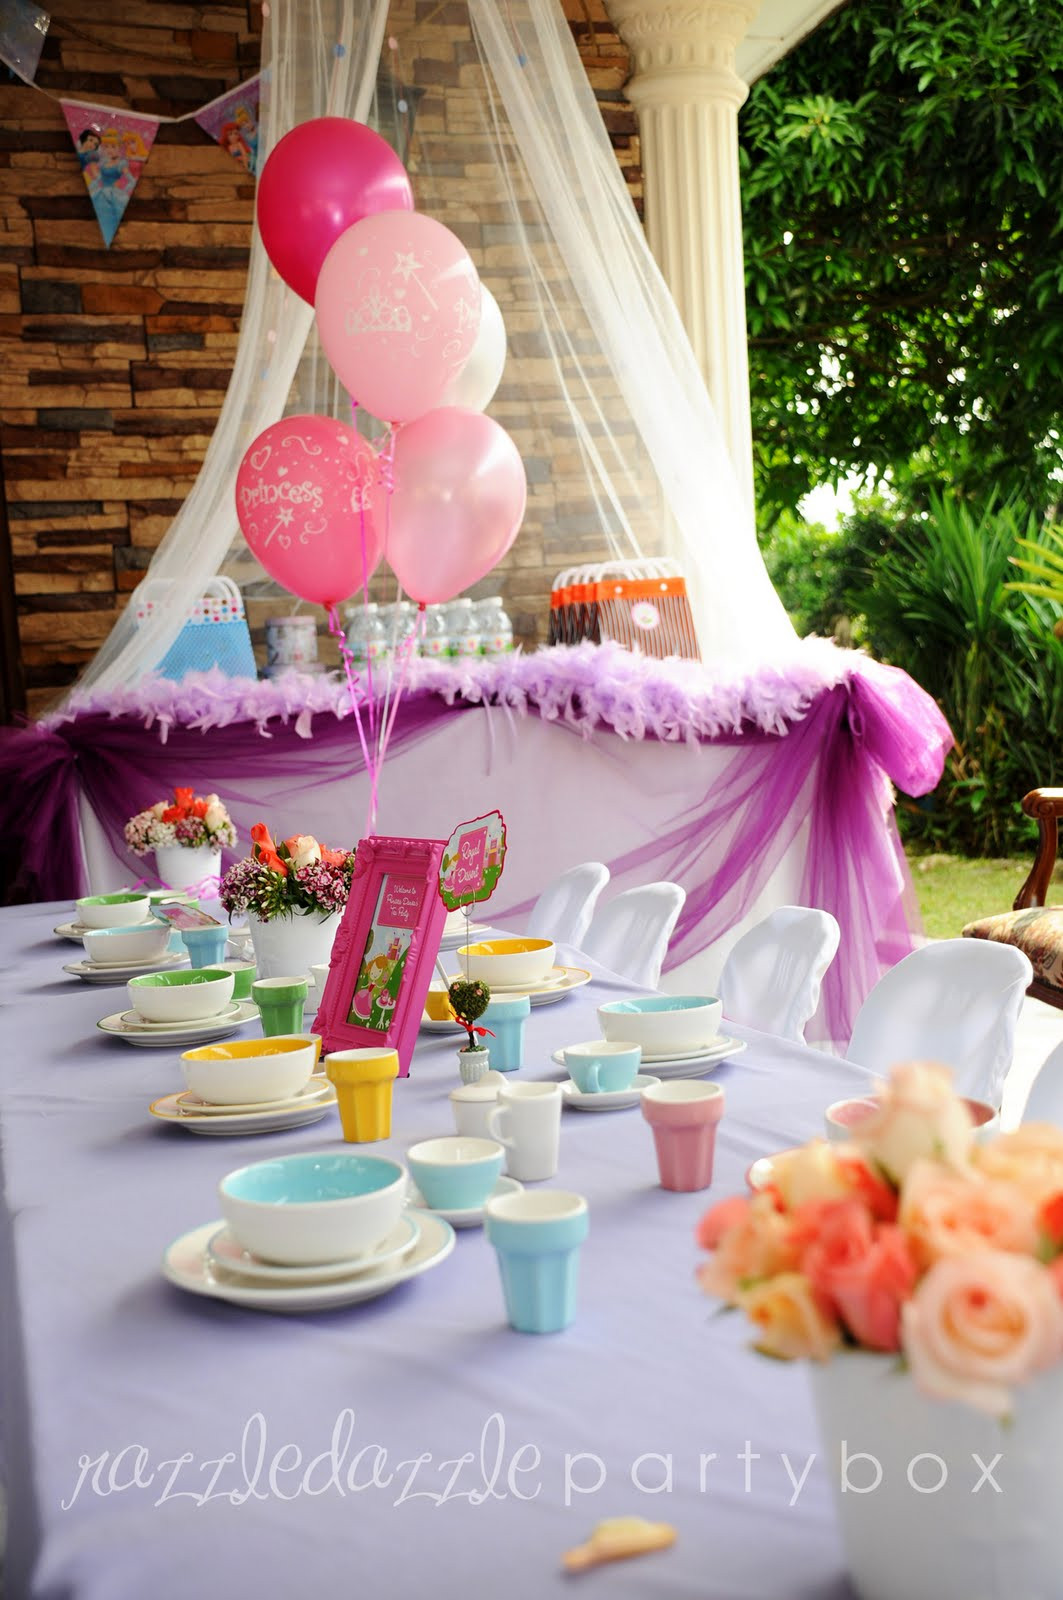 Princess Tea Party Birthday Ideas  Razzle Dazzle Party Box Theme Birthday Party Princess